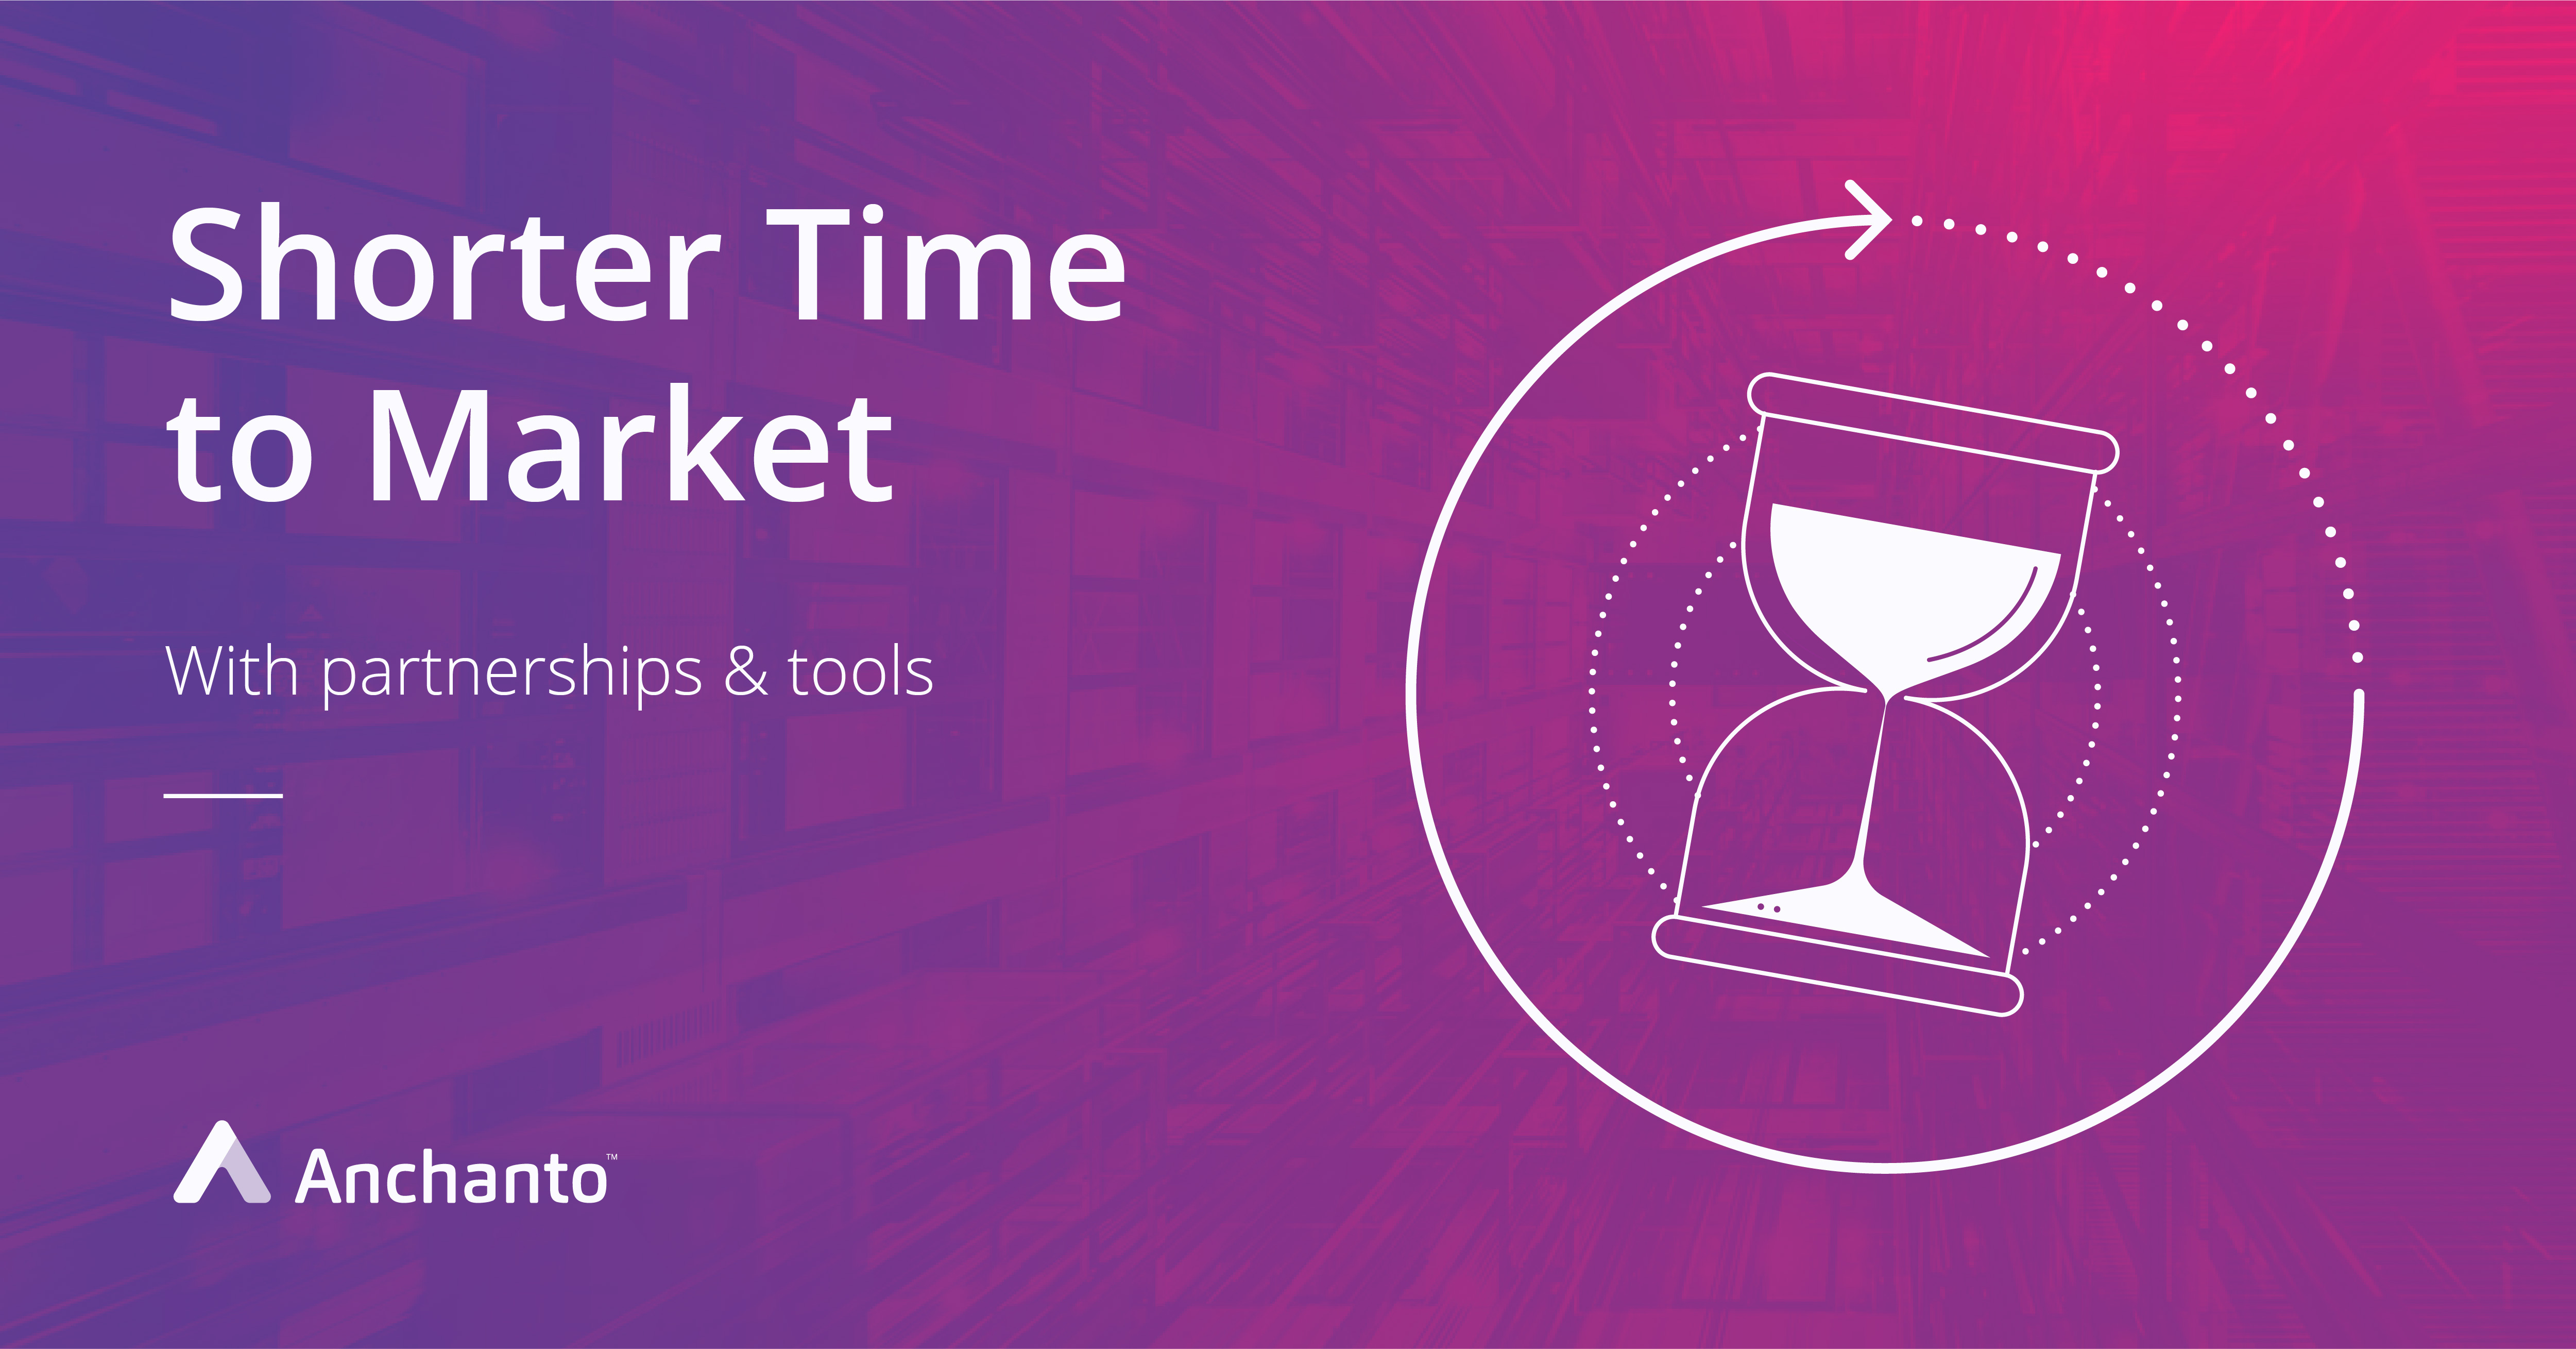 Use Partnerships & Tools for Shorter Time-to-market